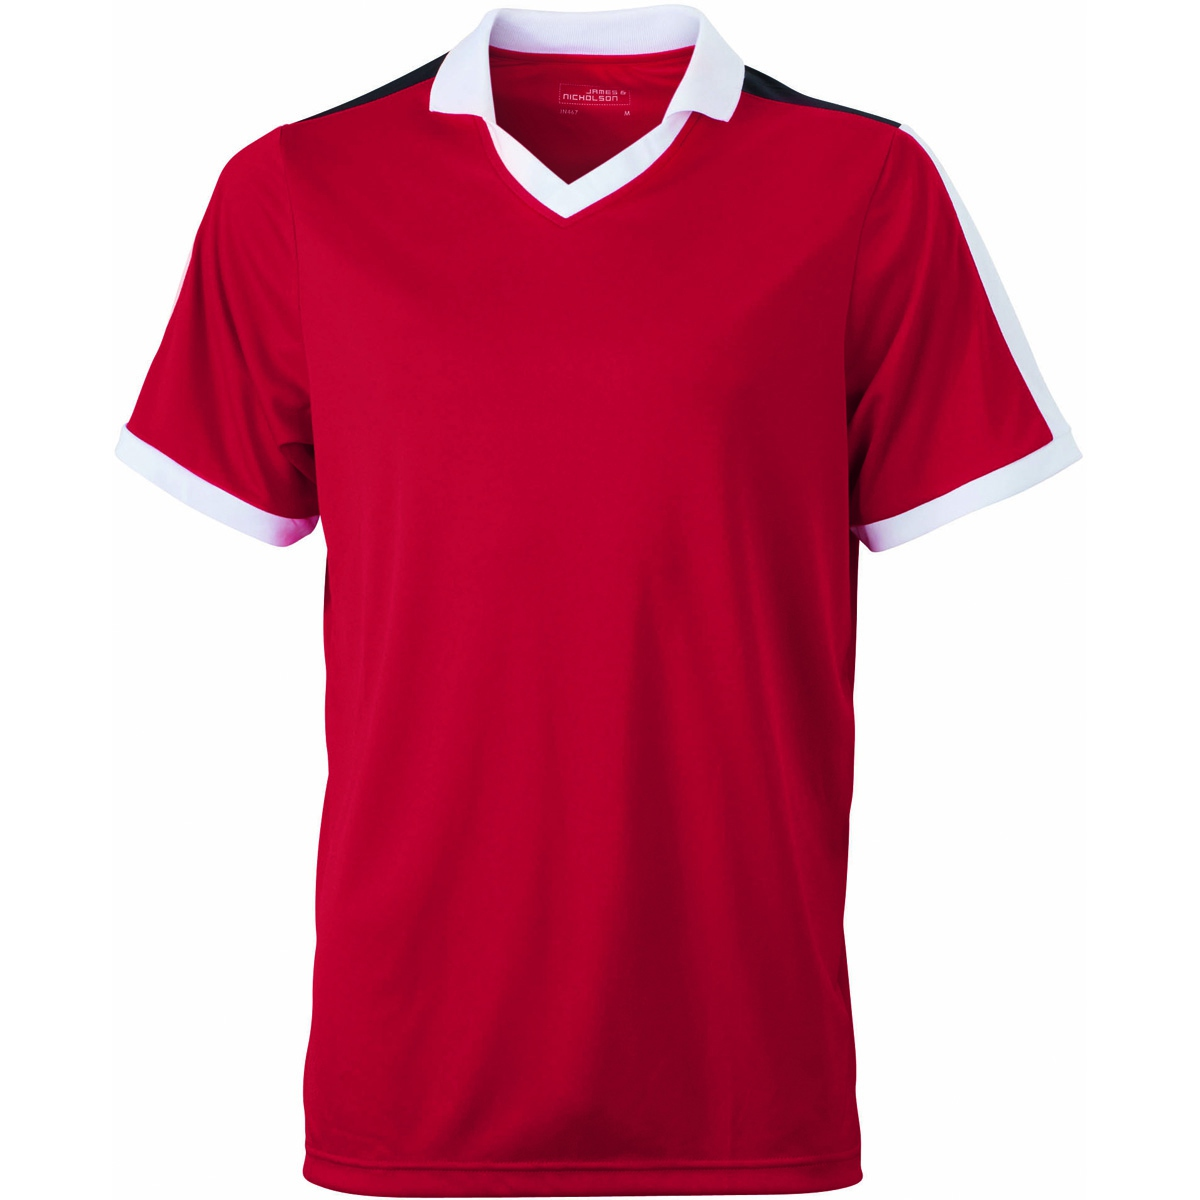 Maillot multisport ADULTE col V style polo JN467 - rouge